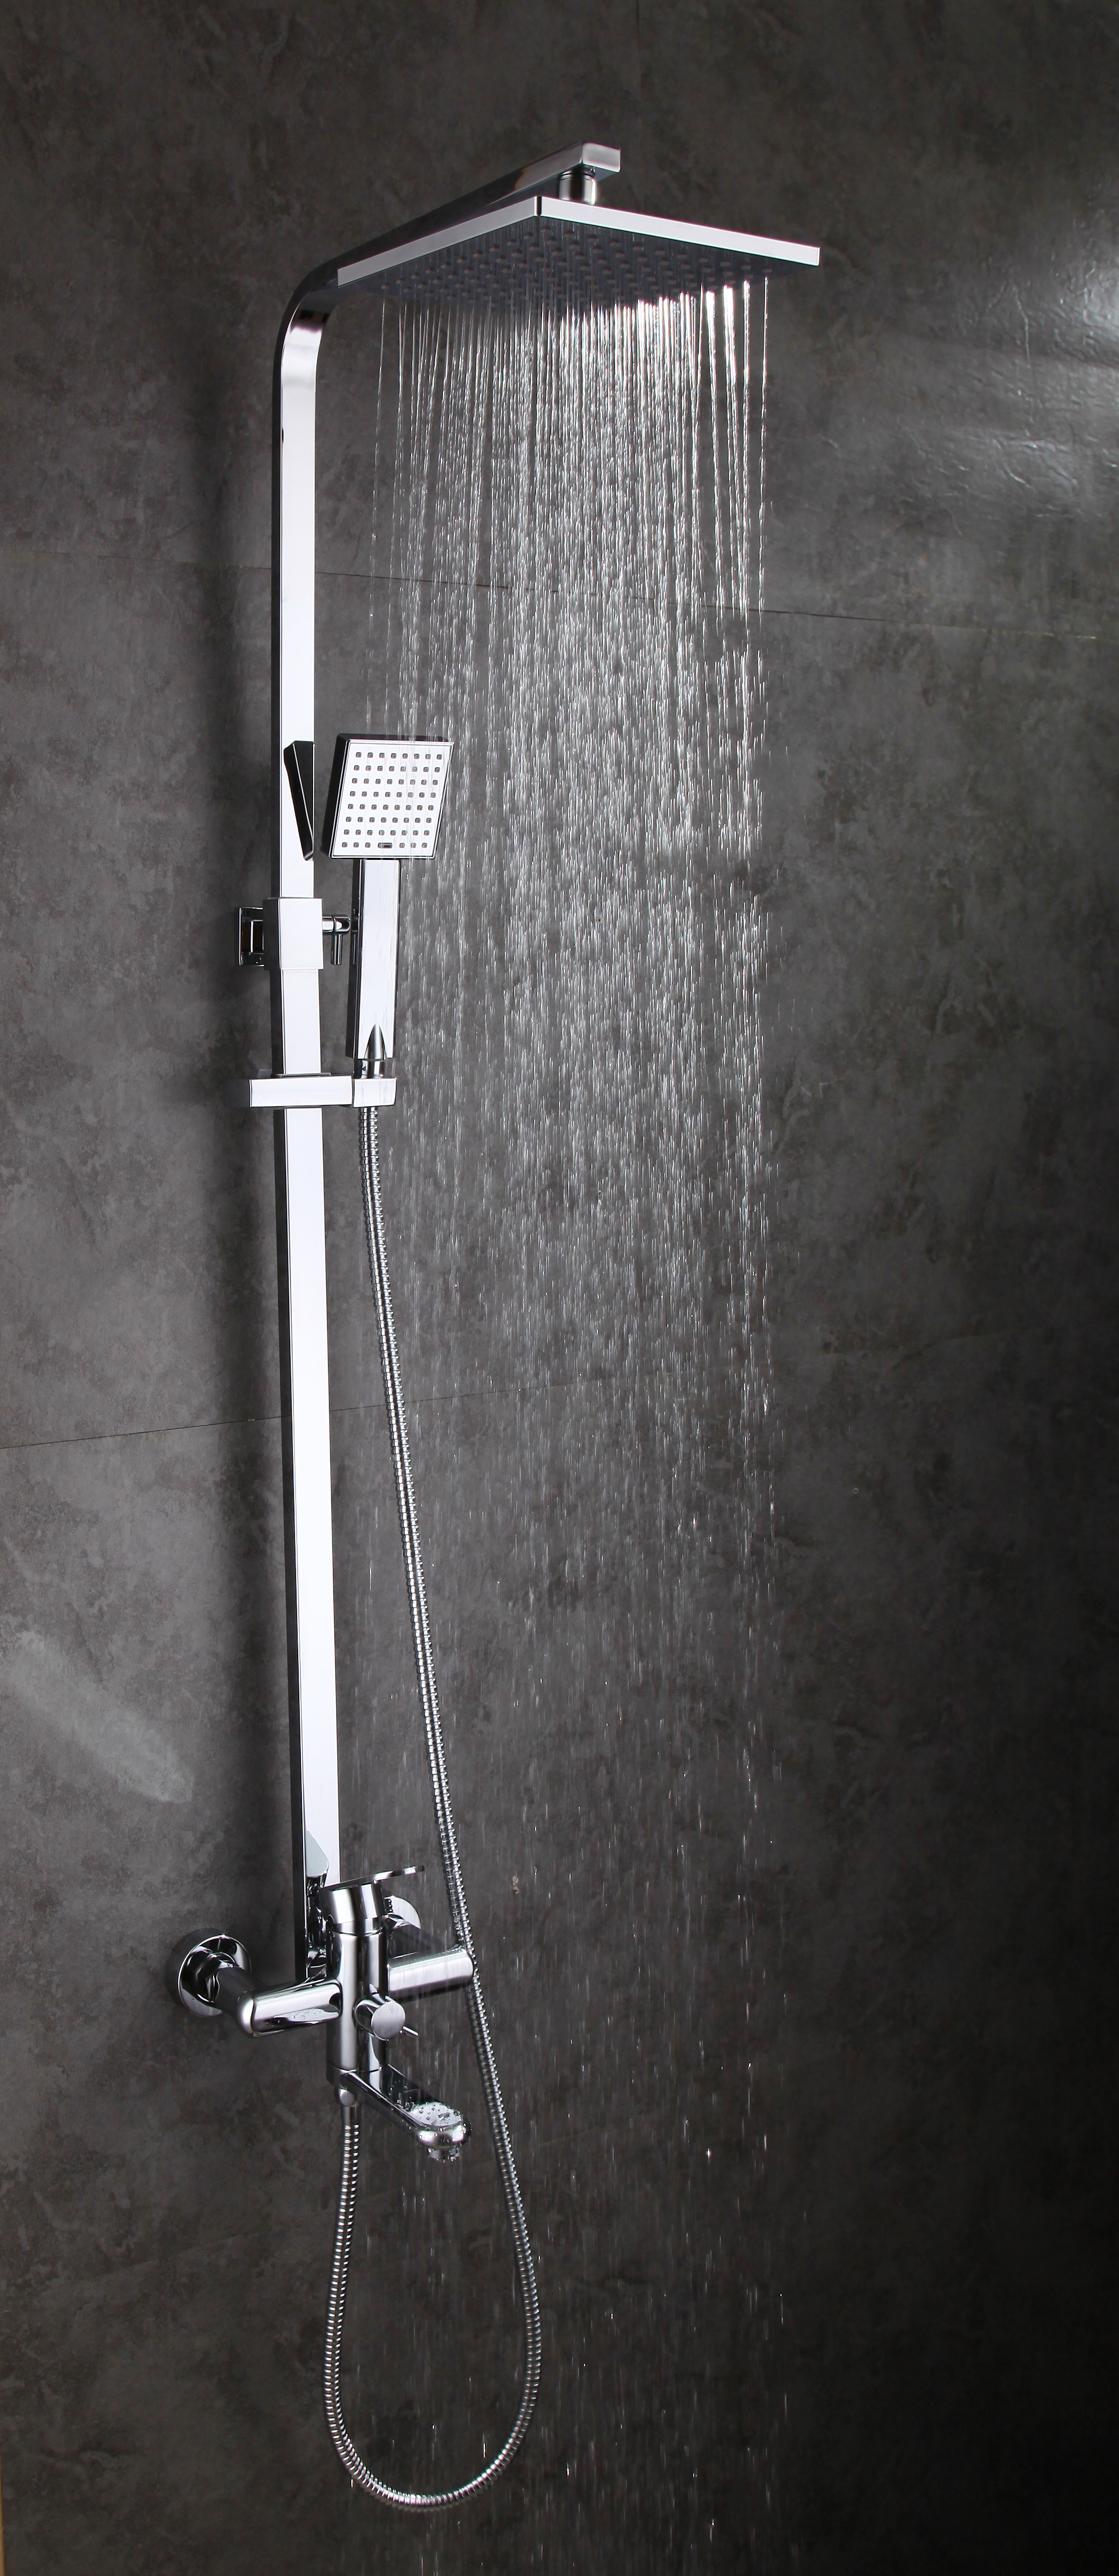 modern bathroom wall mount rain shower set with head hand shower faucet mixer ebay. Black Bedroom Furniture Sets. Home Design Ideas